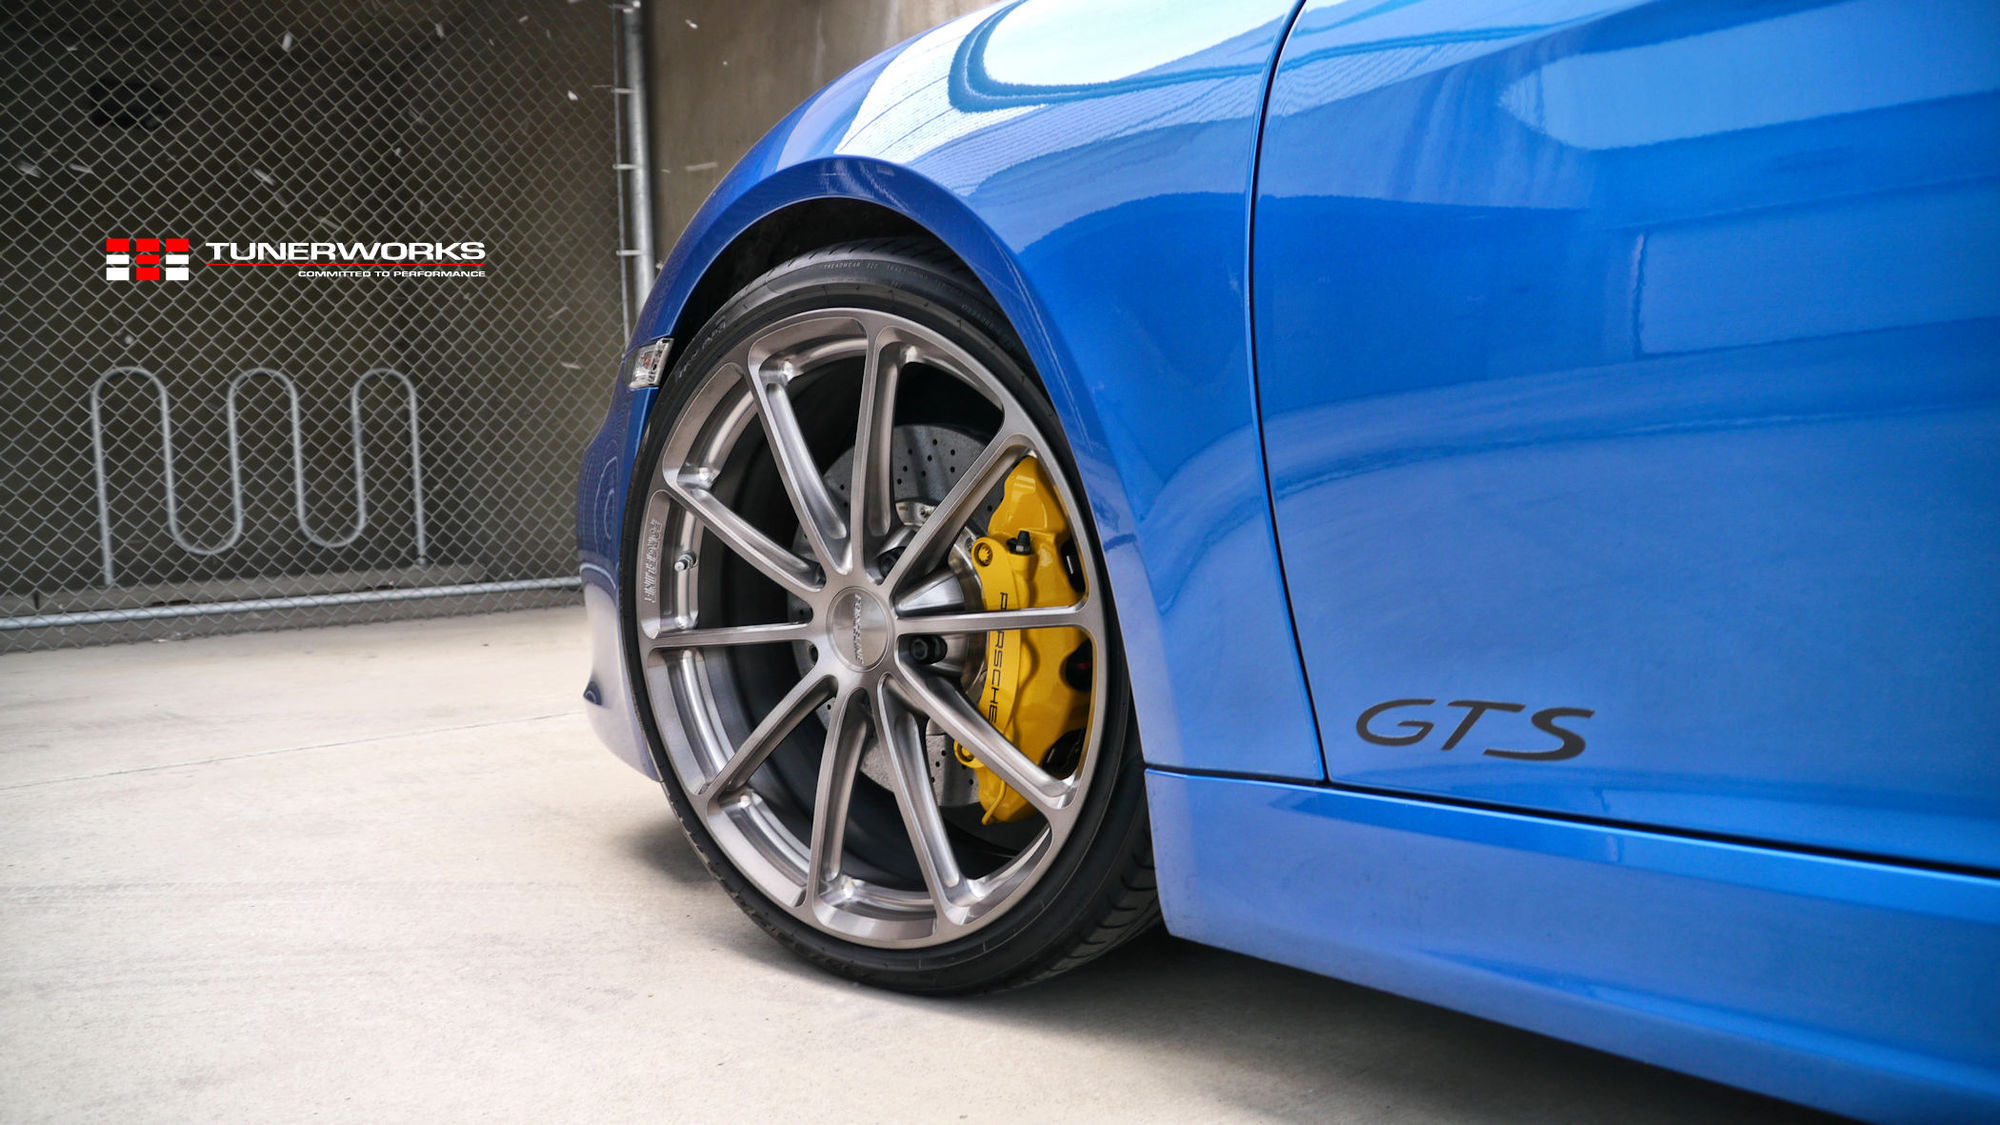 2017 Porsche Cayman | Tunerworks Blue Porsche Cayman GTS on Forgeline One Piece Forged Monoblock GT1 5-Lug Wheels